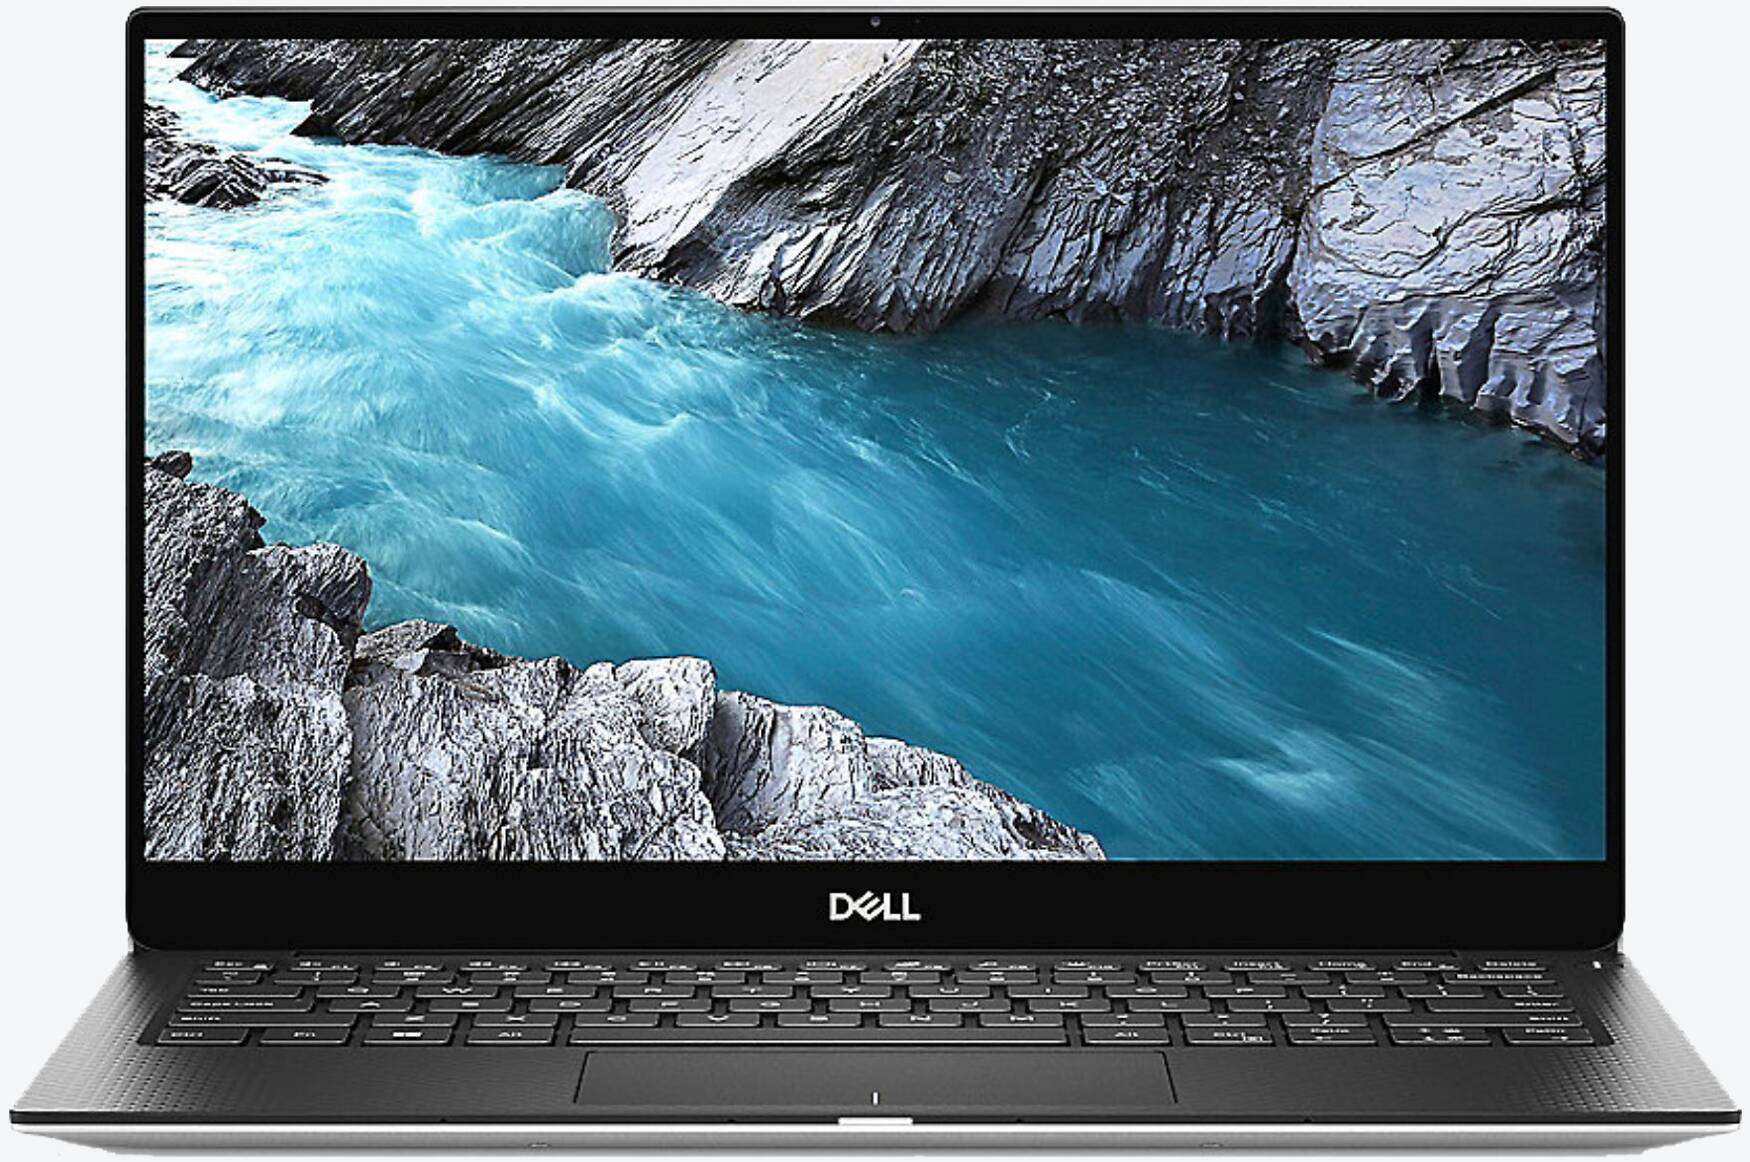 Dell XPS 13 (2019) 9380-GCHCN UHD Touch